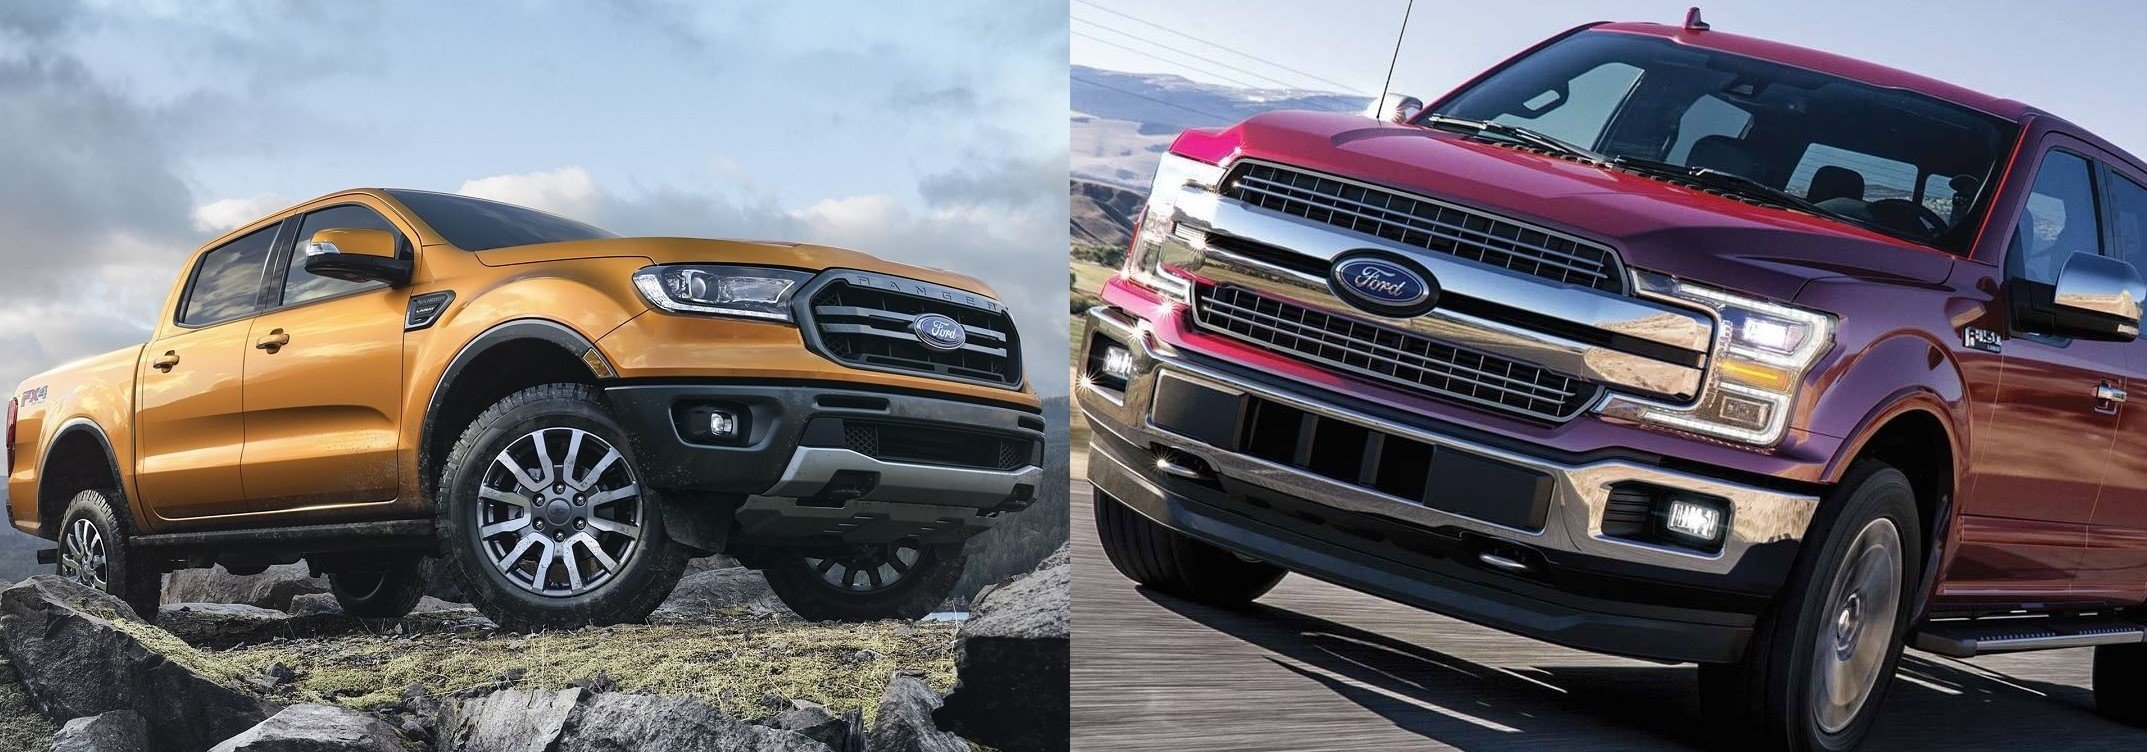 Ford Ranger Vs Ford F 150 Size Price Tulsa Ok